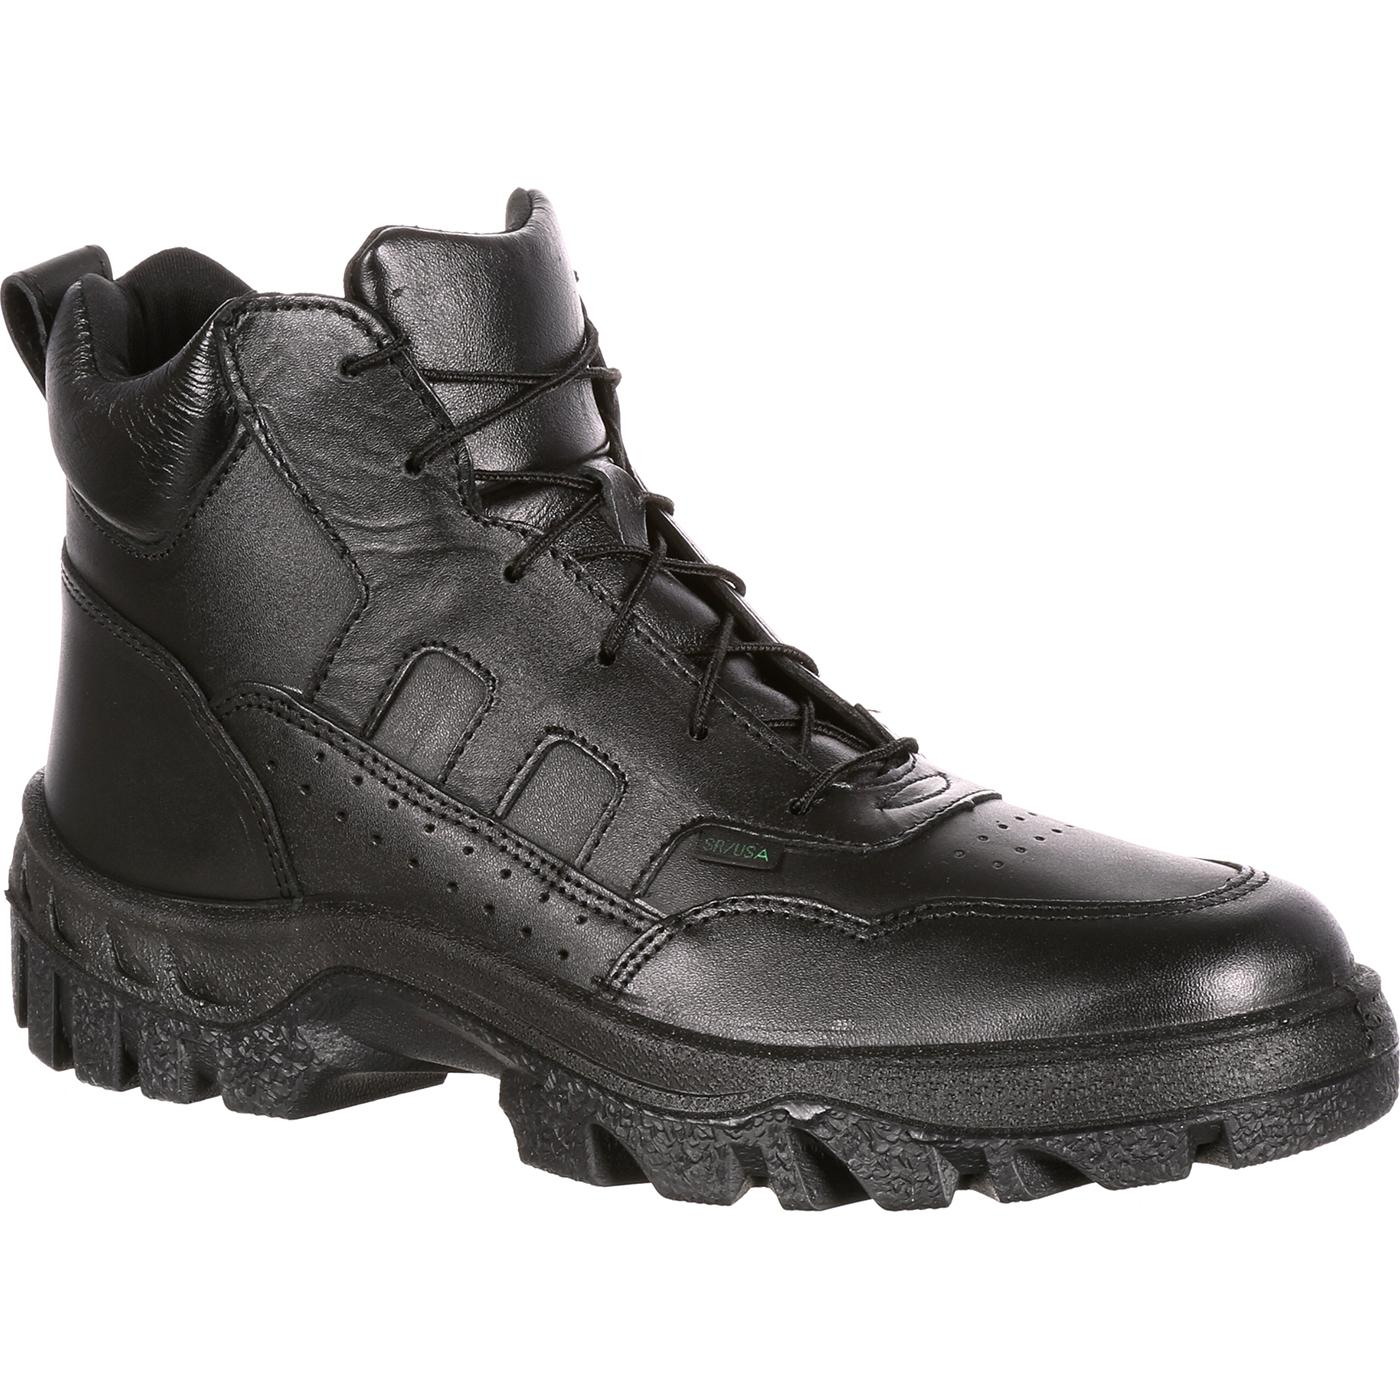 6ee33773771 Details about Rocky Men s TMC Postal Approved Sport Chukka Boots Black  FQ0005015